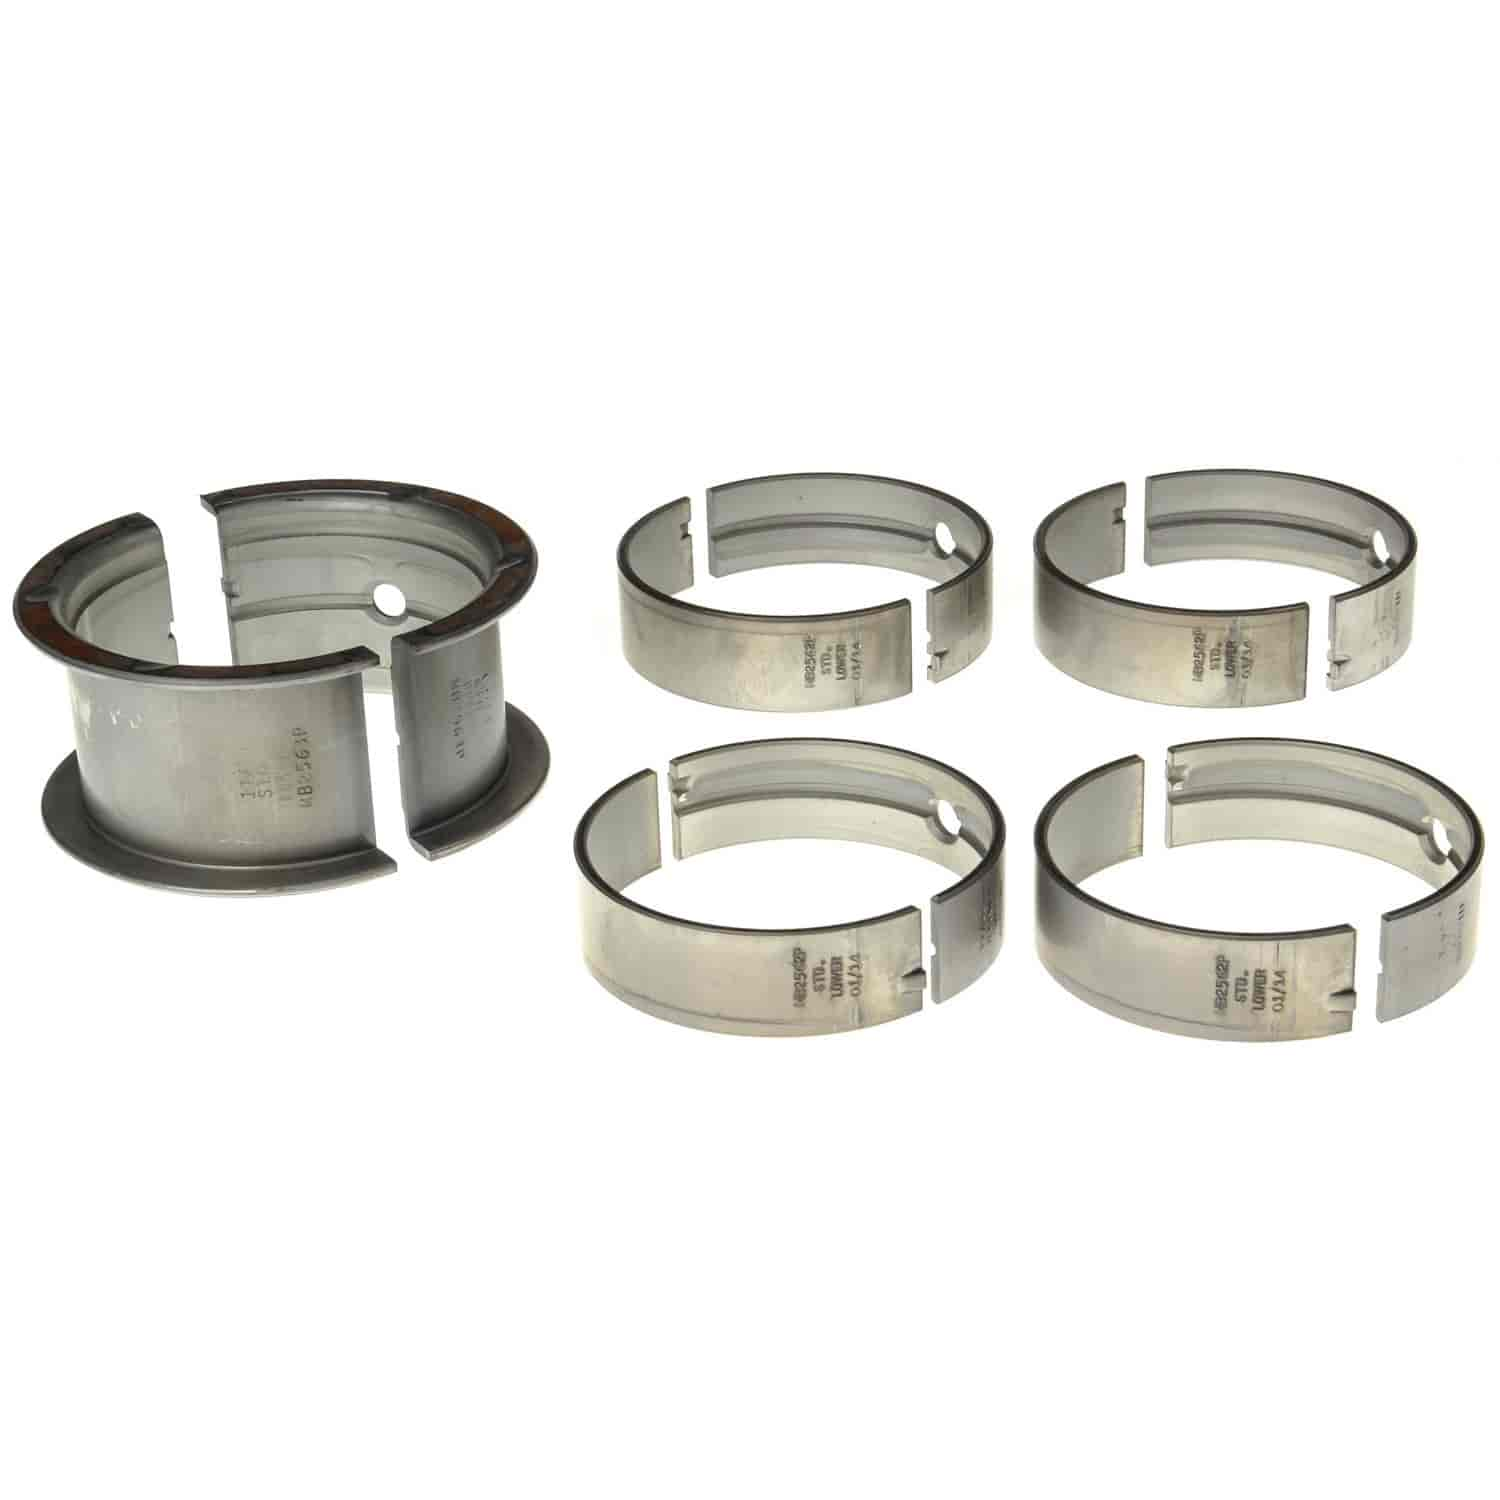 Clevite MS1038HX - Clevite 77 High-Performance Bearings